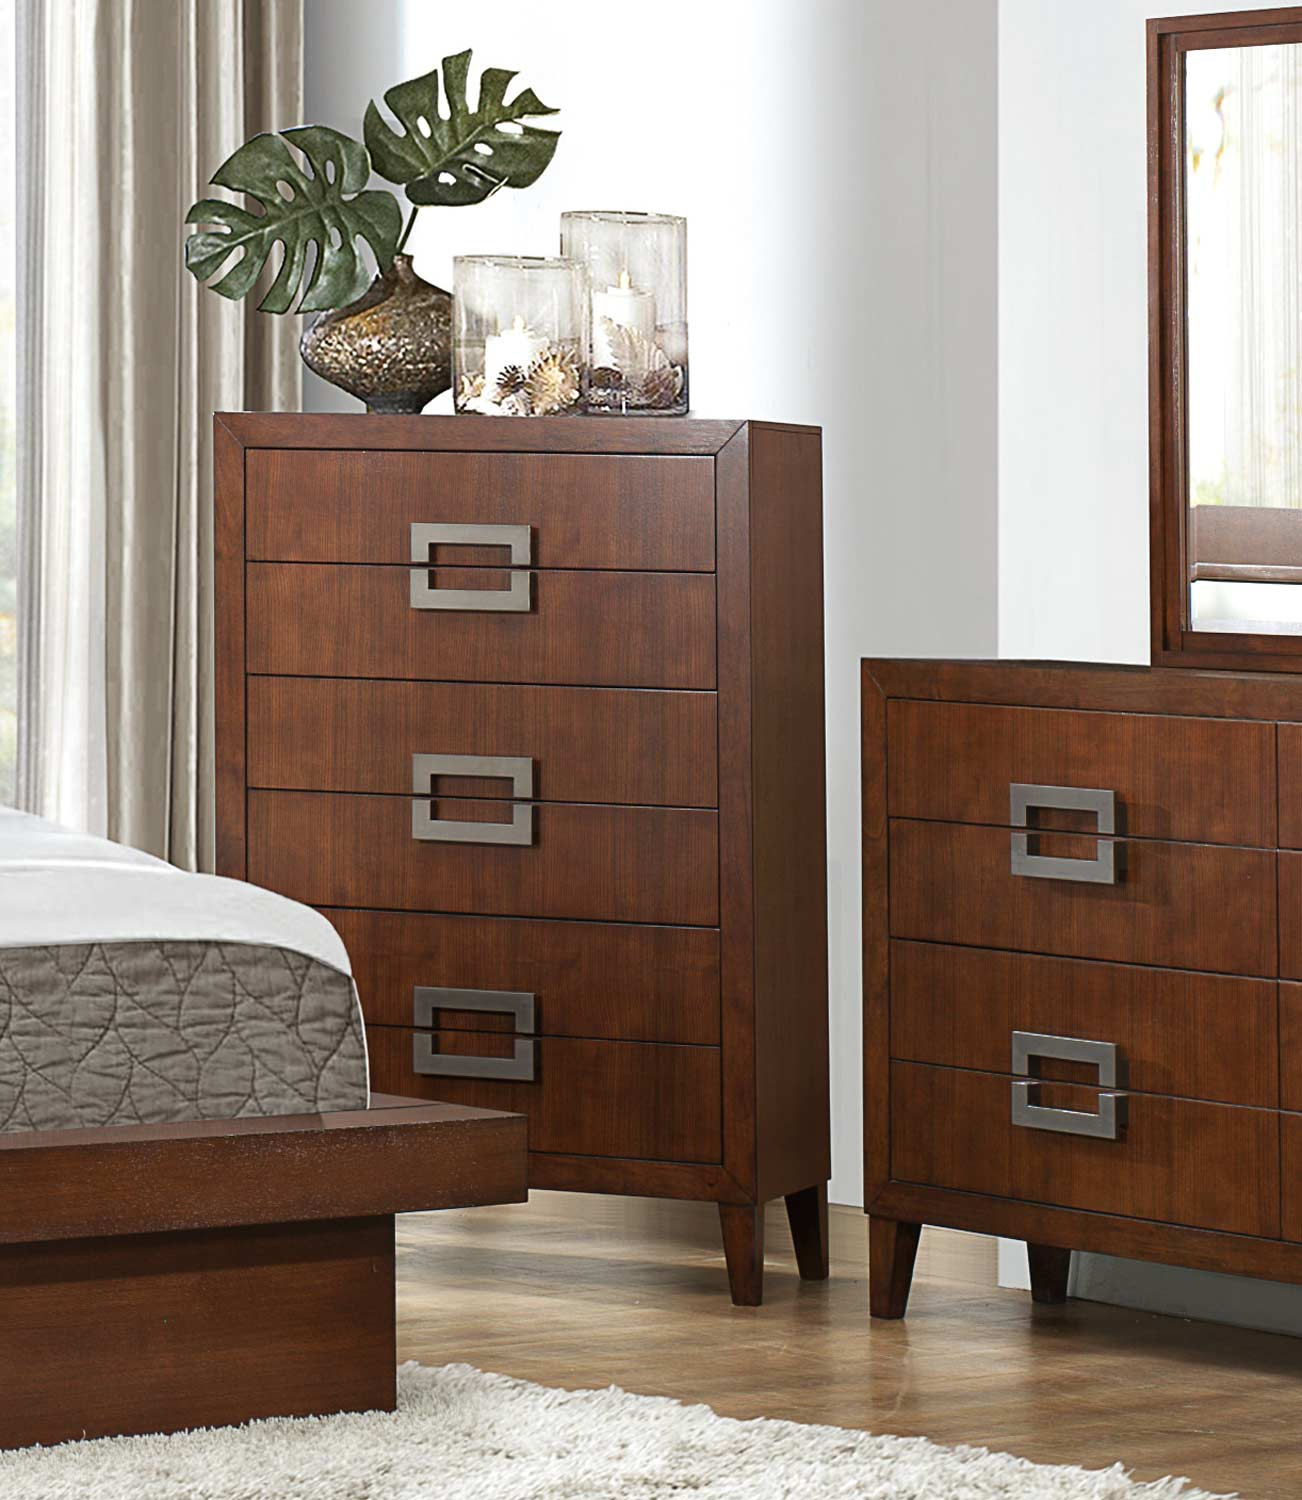 Homelegance Arata Chest - Cappucino Brown